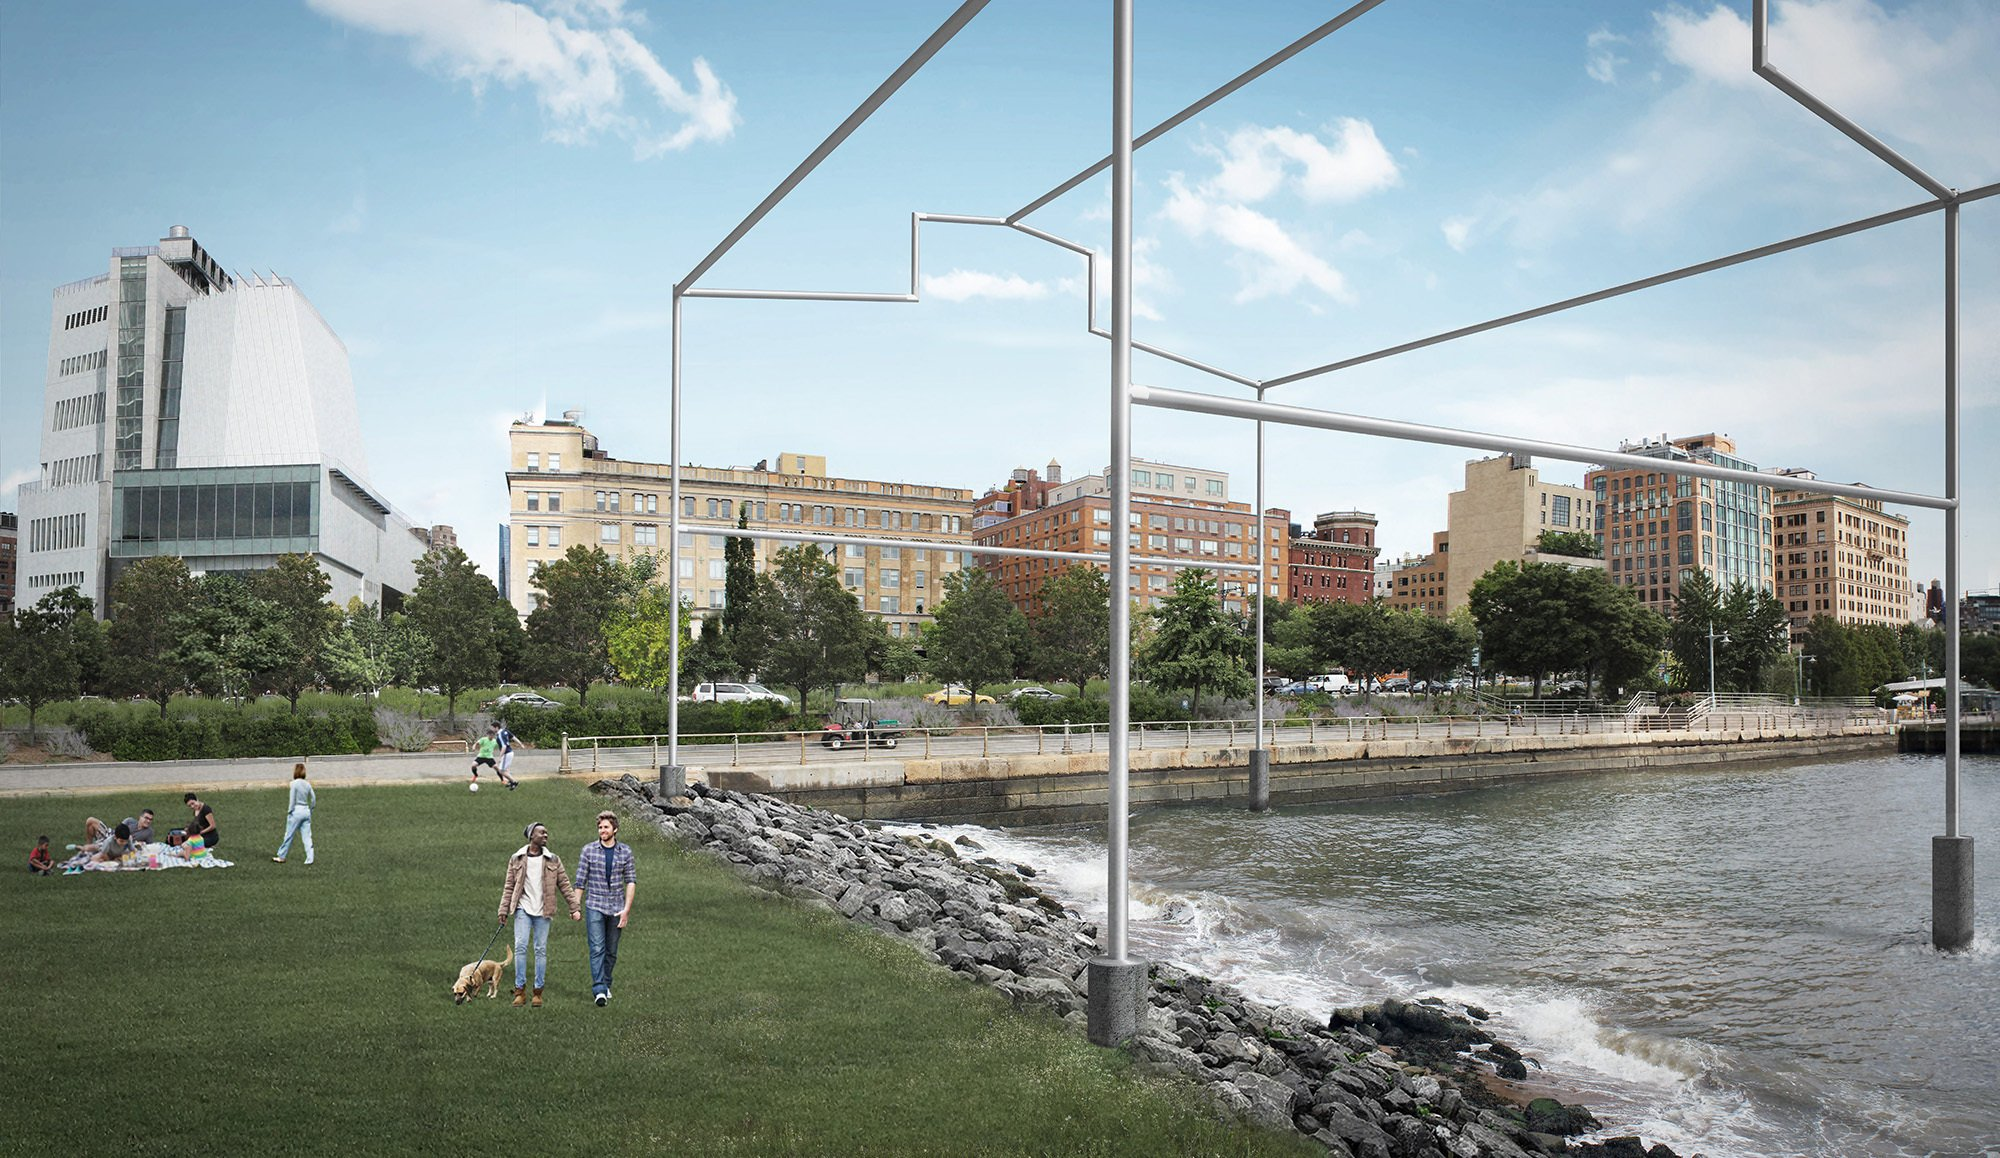 """A rendering of """"Day's End,"""" a proposed public art installation by David Hammons that would enter the Hudson River near the meatpacking district. On left, the Whitney Museum of American Art. Guy Nordenson and Associates"""